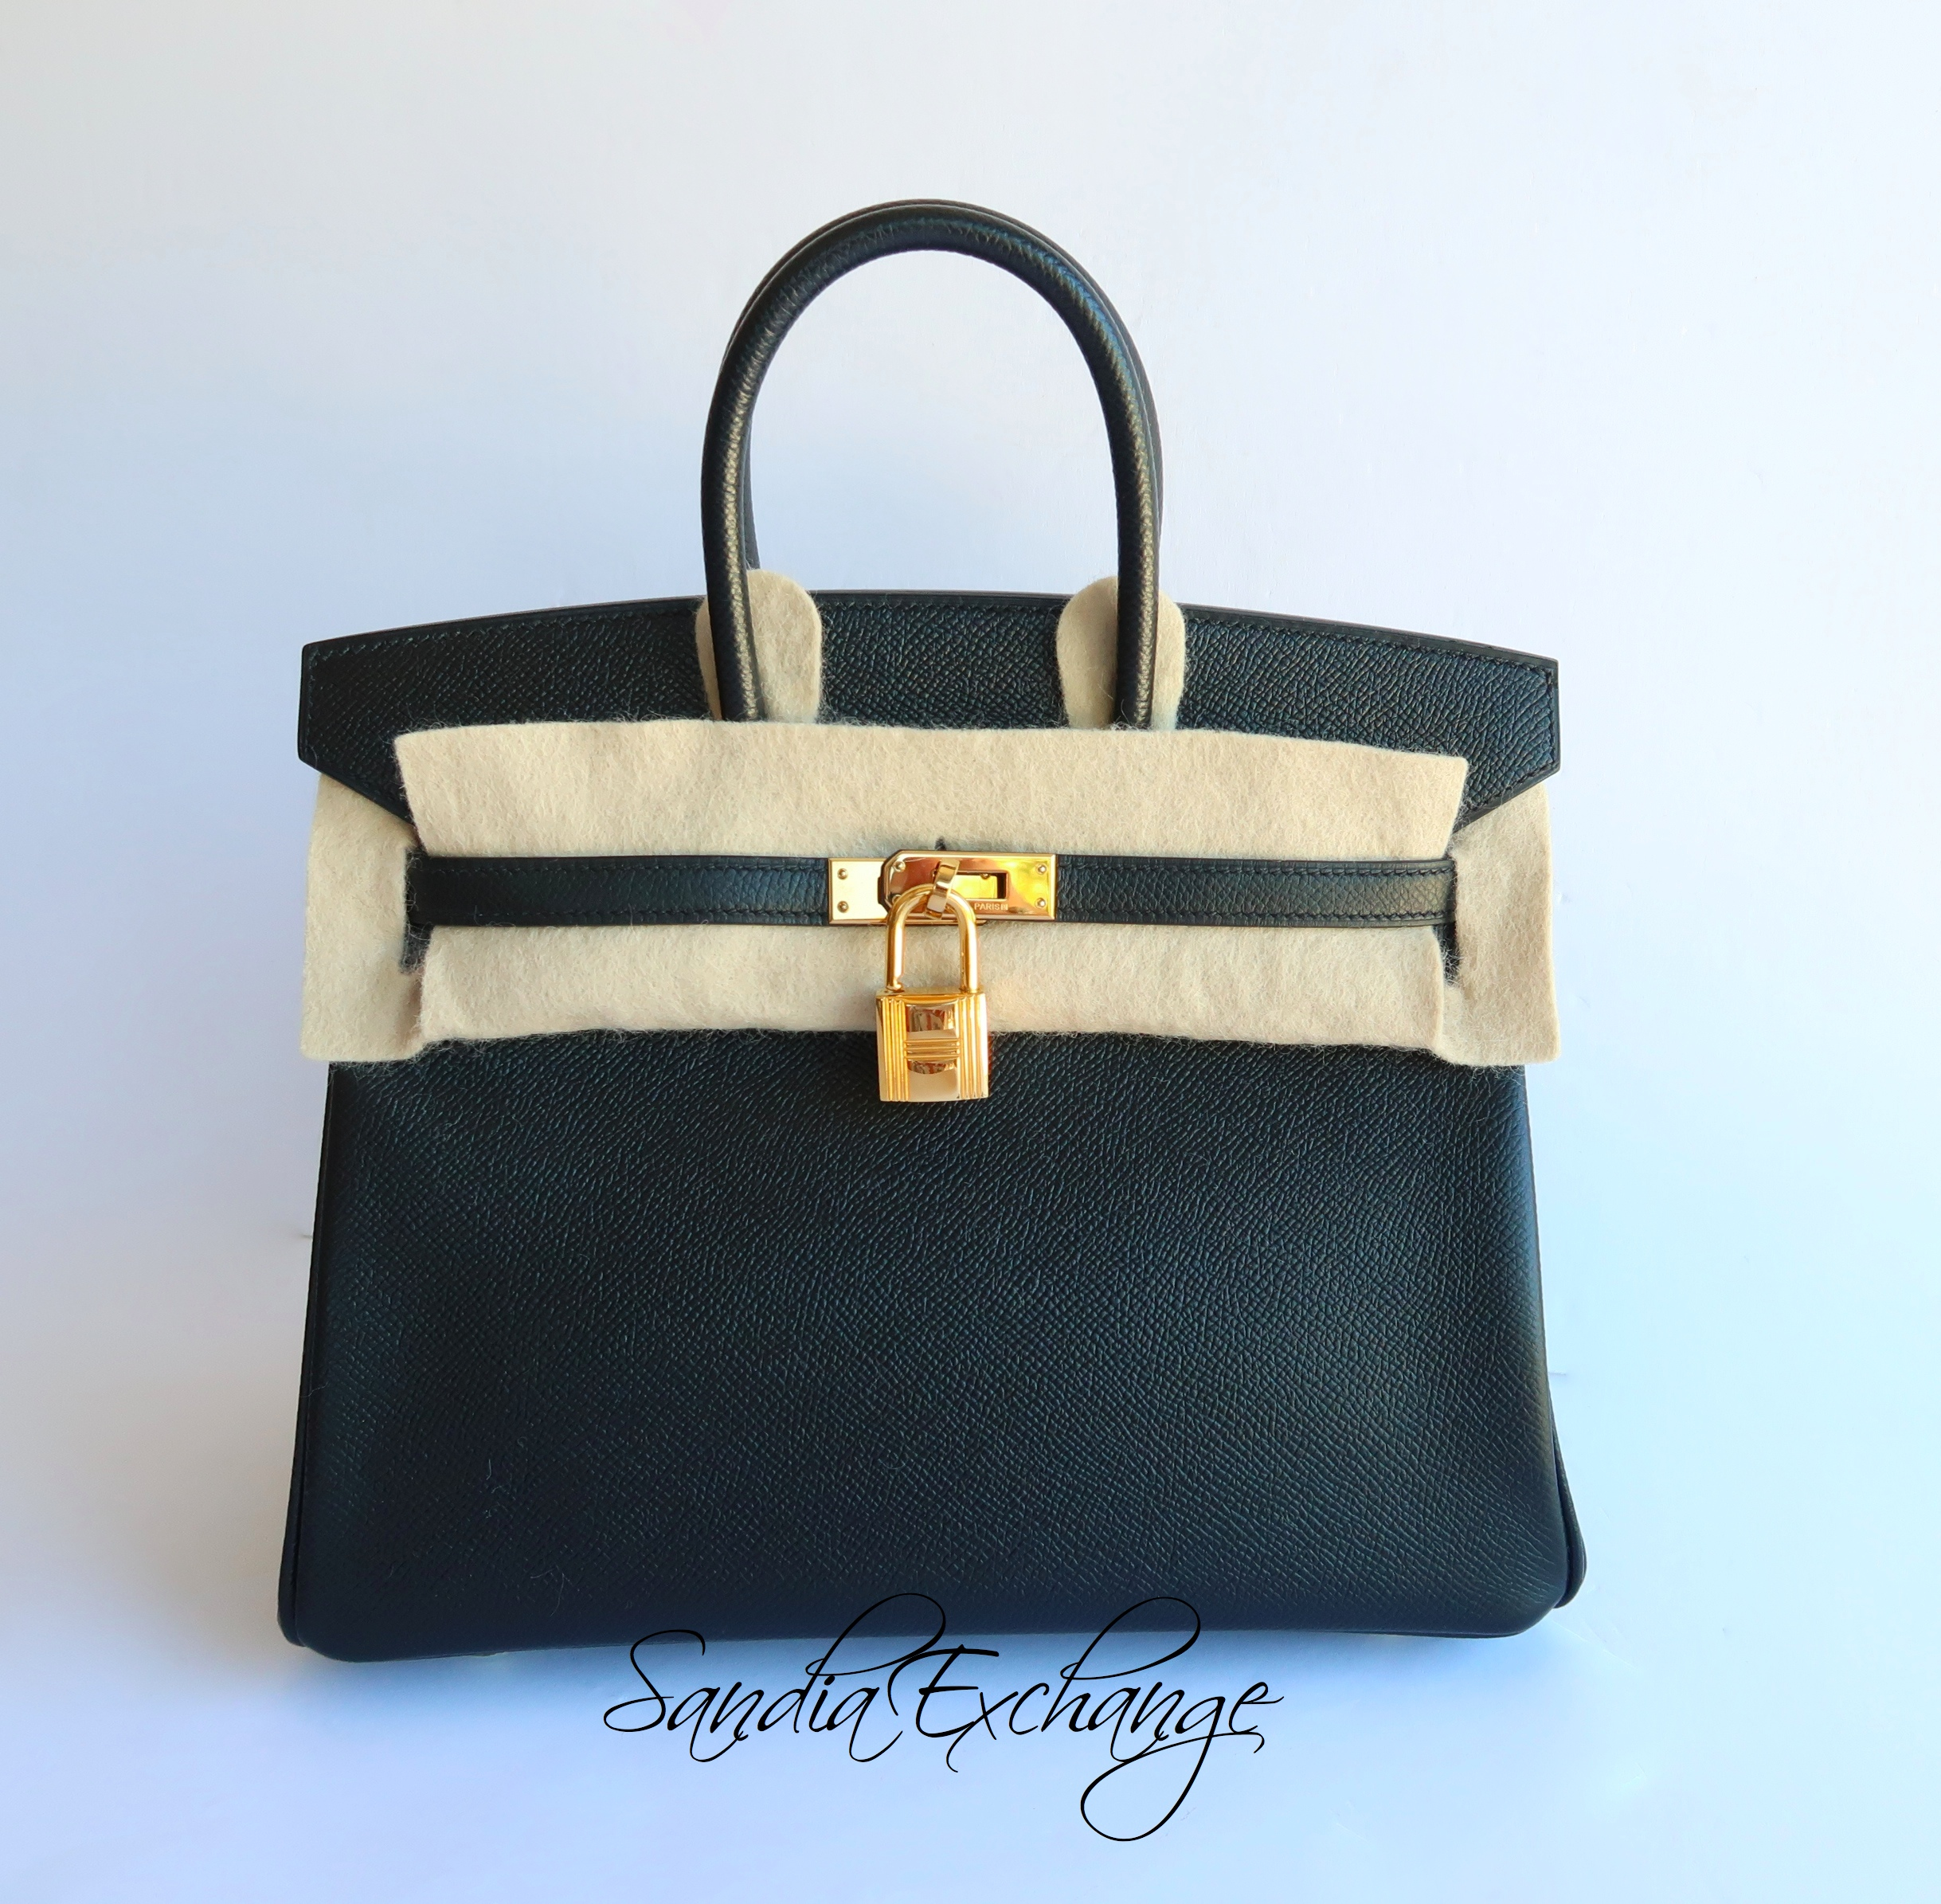 9a70e781b7 HERMES Birkin 25 cm Black Noir Epsom Gold Hardware RARE! Authentic ...